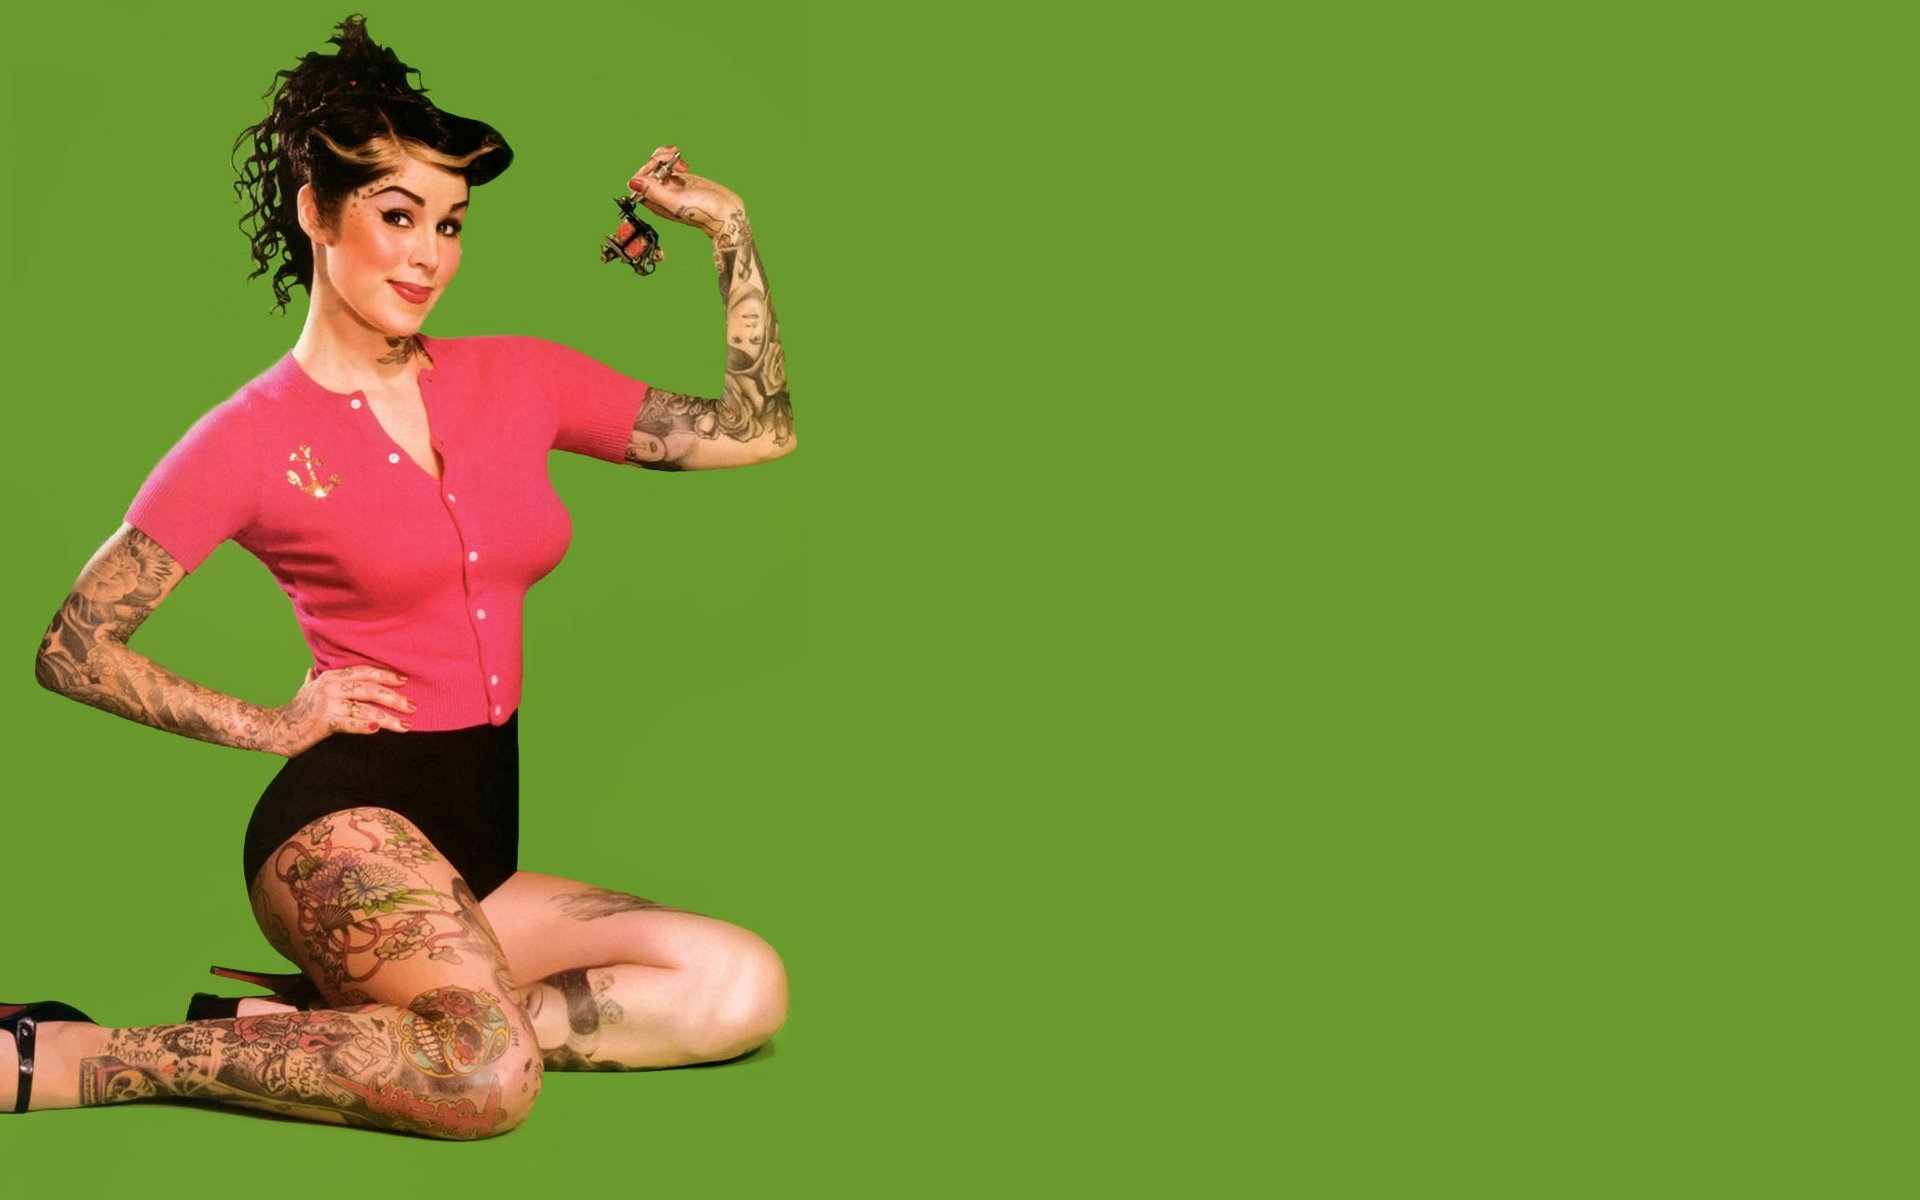 Pin By Mark On Hd Wallpapers: Kat Von D Full HD Wallpaper And Background Image